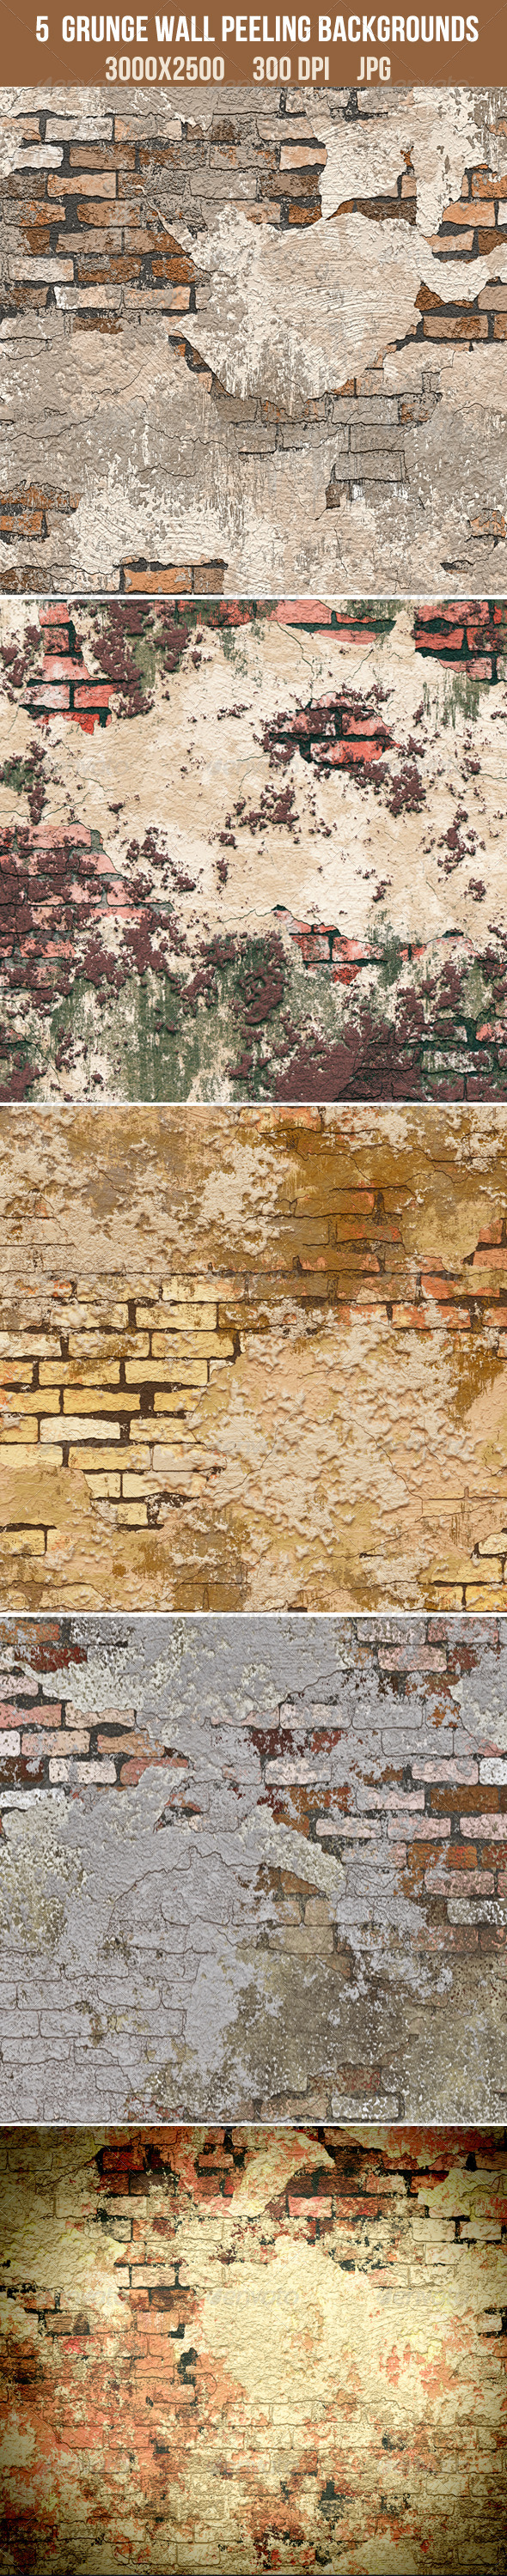 Grunge-Brick-Wall-Peeling-Textures-GraphicRiver-Image-Layered-wallpaper-wpc9201704